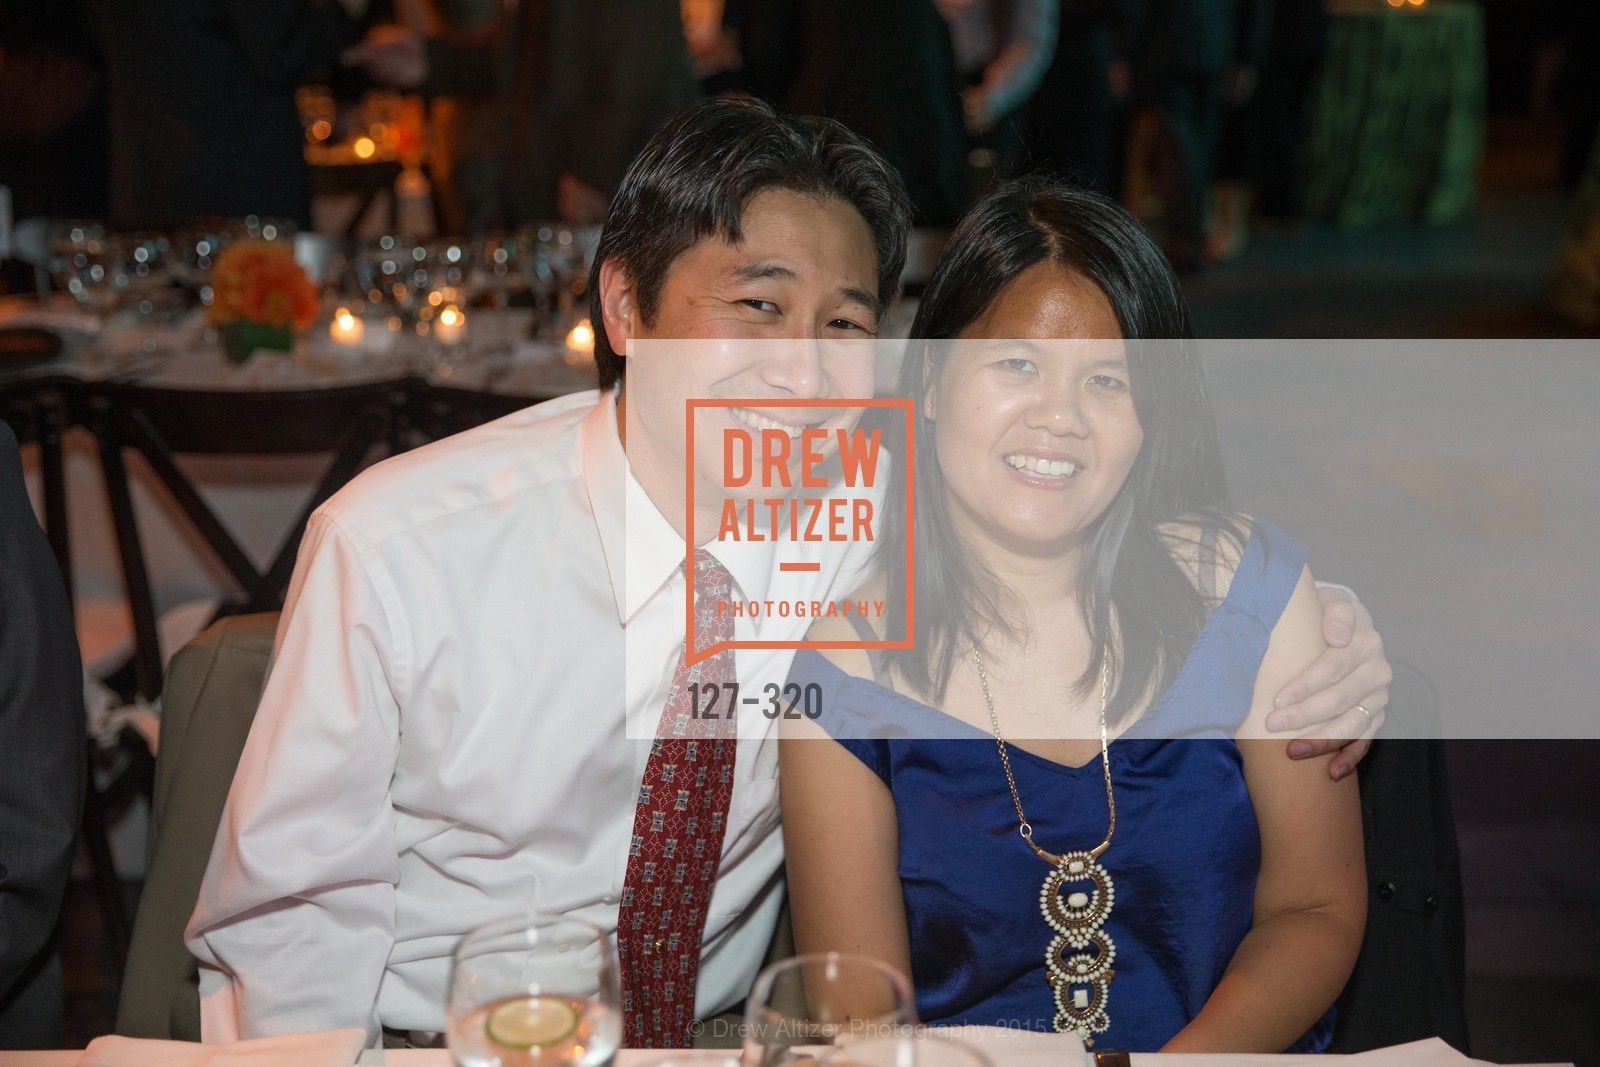 Grant Nakatani, Tammy Nakatani, SF - Marin Food Bank Presents ONE BIG TABLE, SF- Marin Food Bank. 900 Pennsylvania Ave, September 26th, 2015,Drew Altizer, Drew Altizer Photography, full-service agency, private events, San Francisco photographer, photographer california